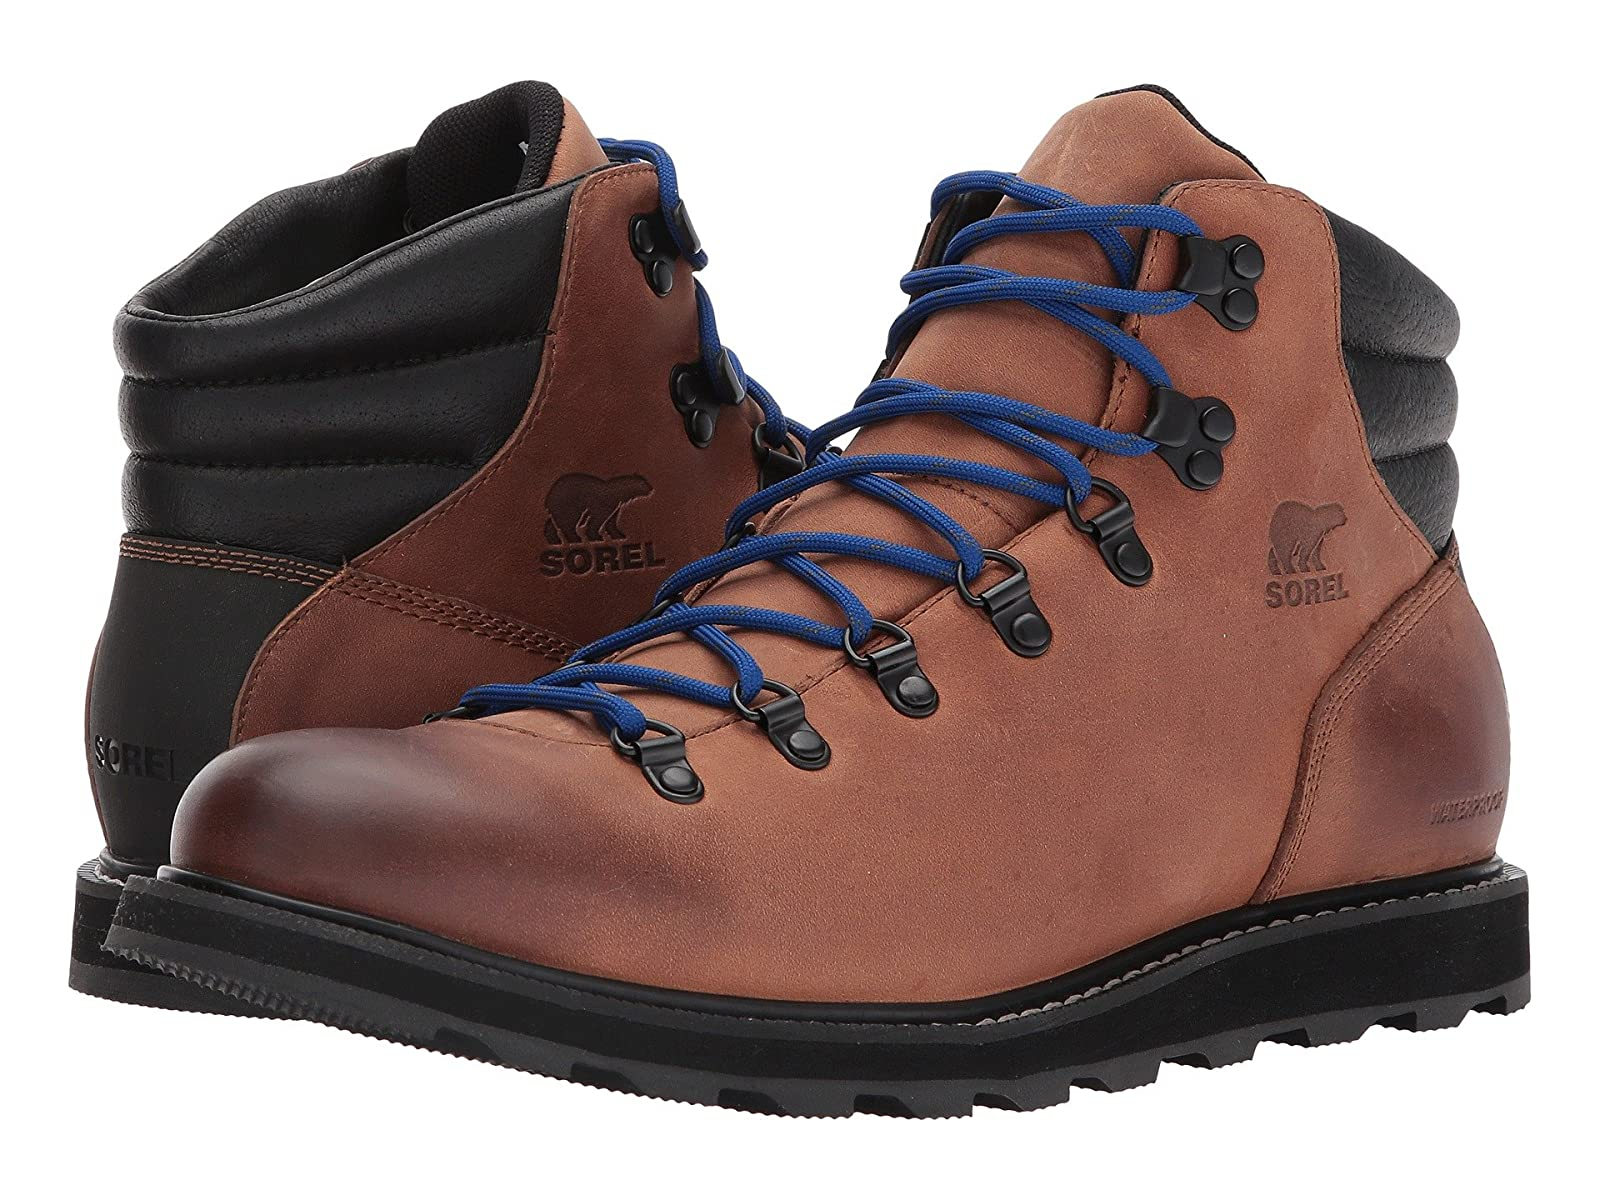 SOREL Madson Hiker WaterproofEconomical and quality shoes